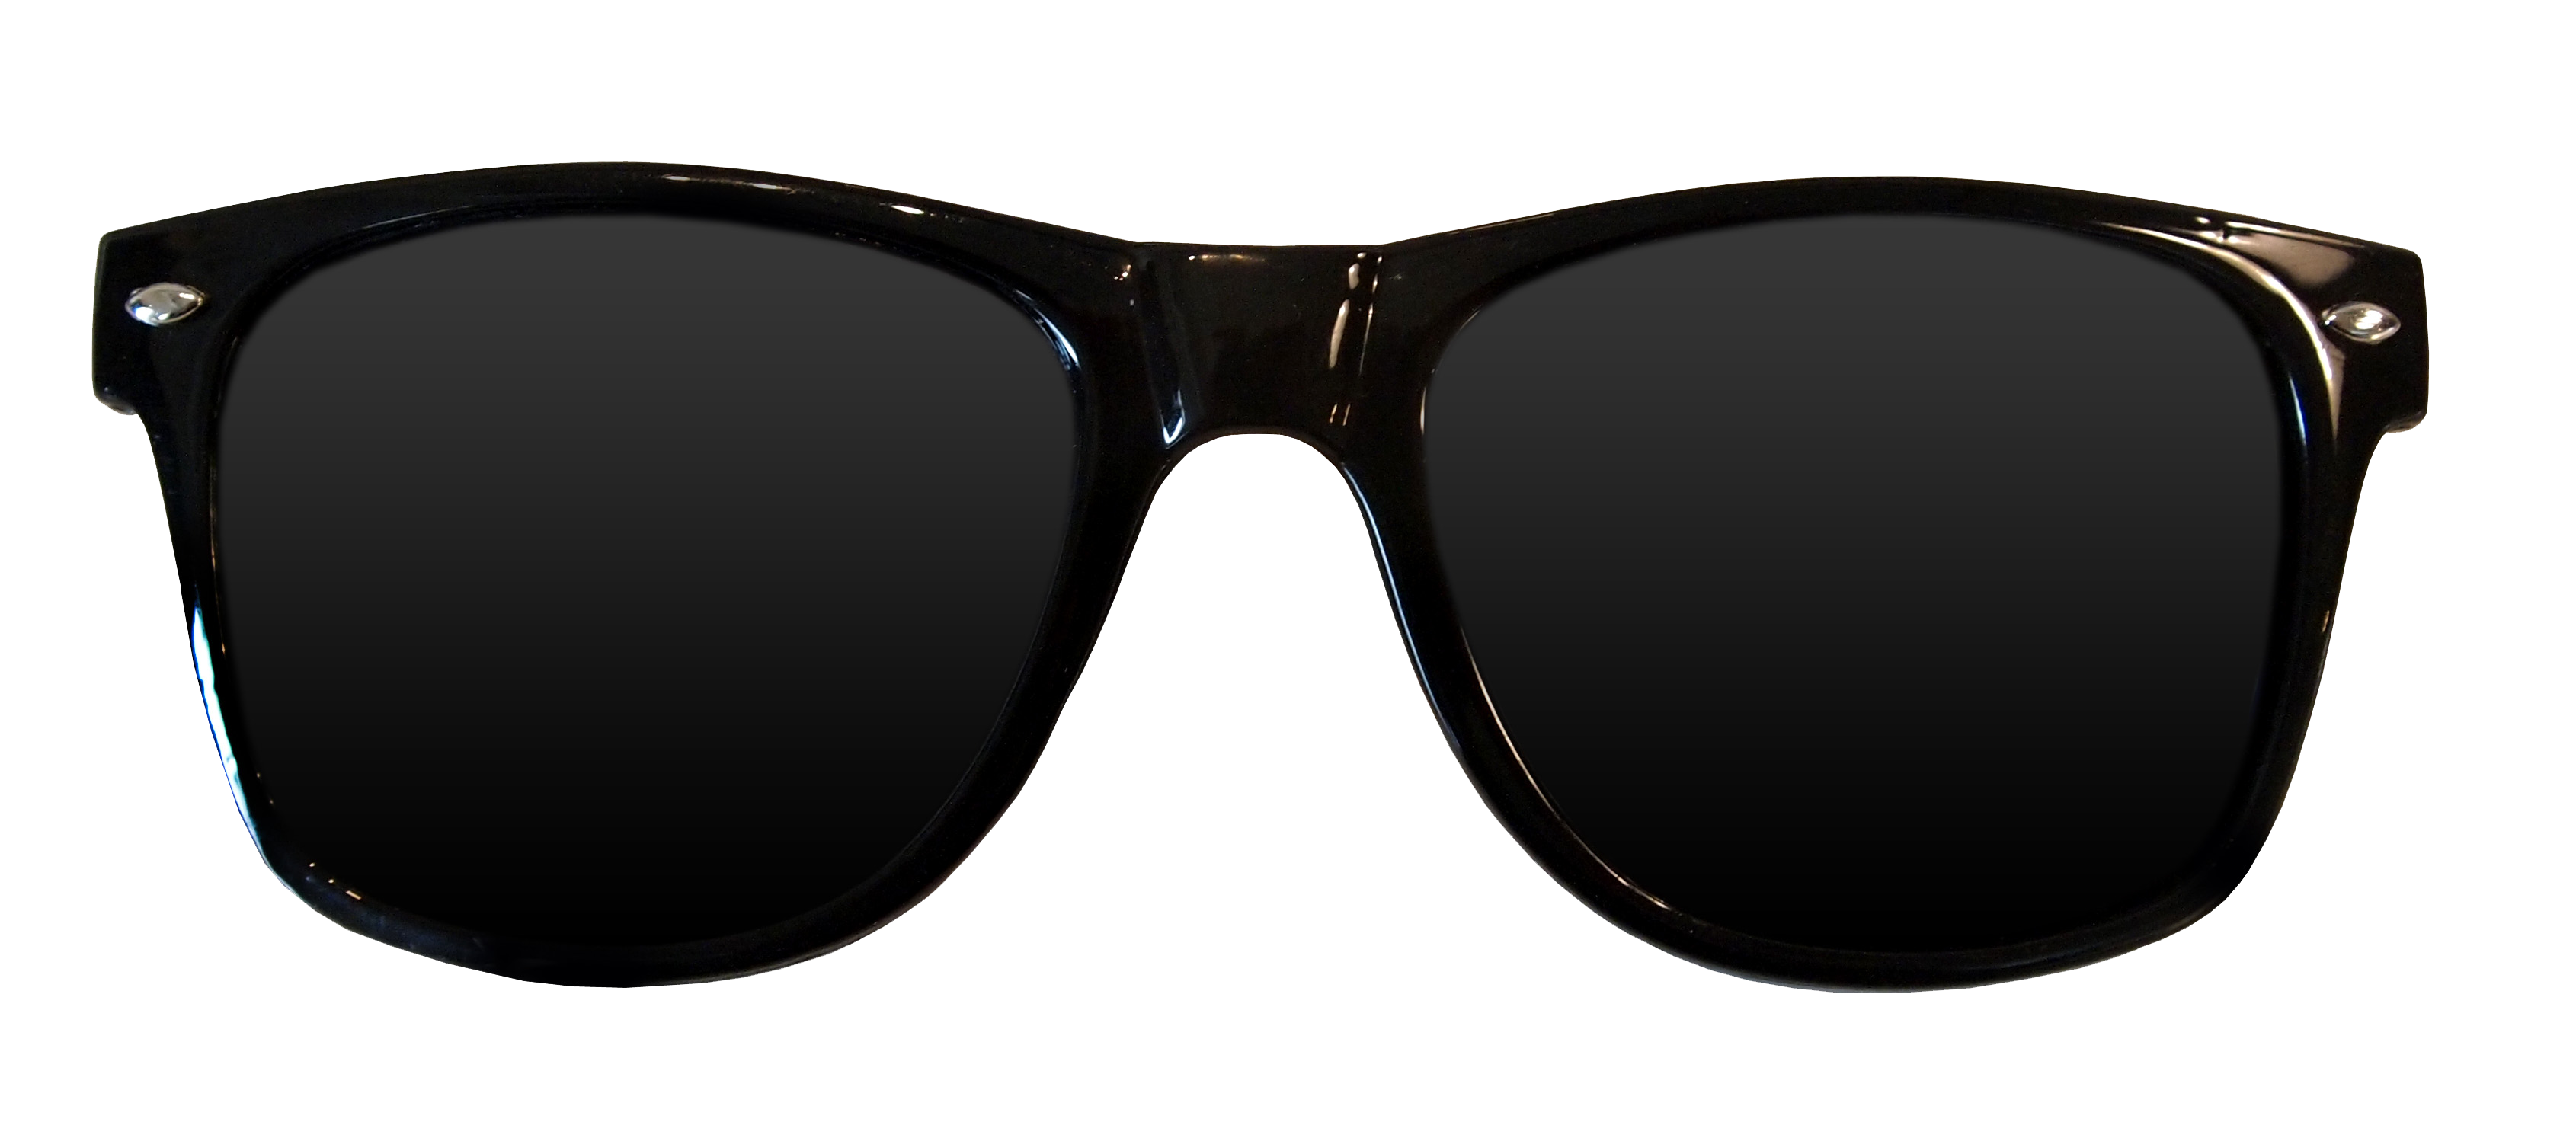 Sunglasses Free Download Png